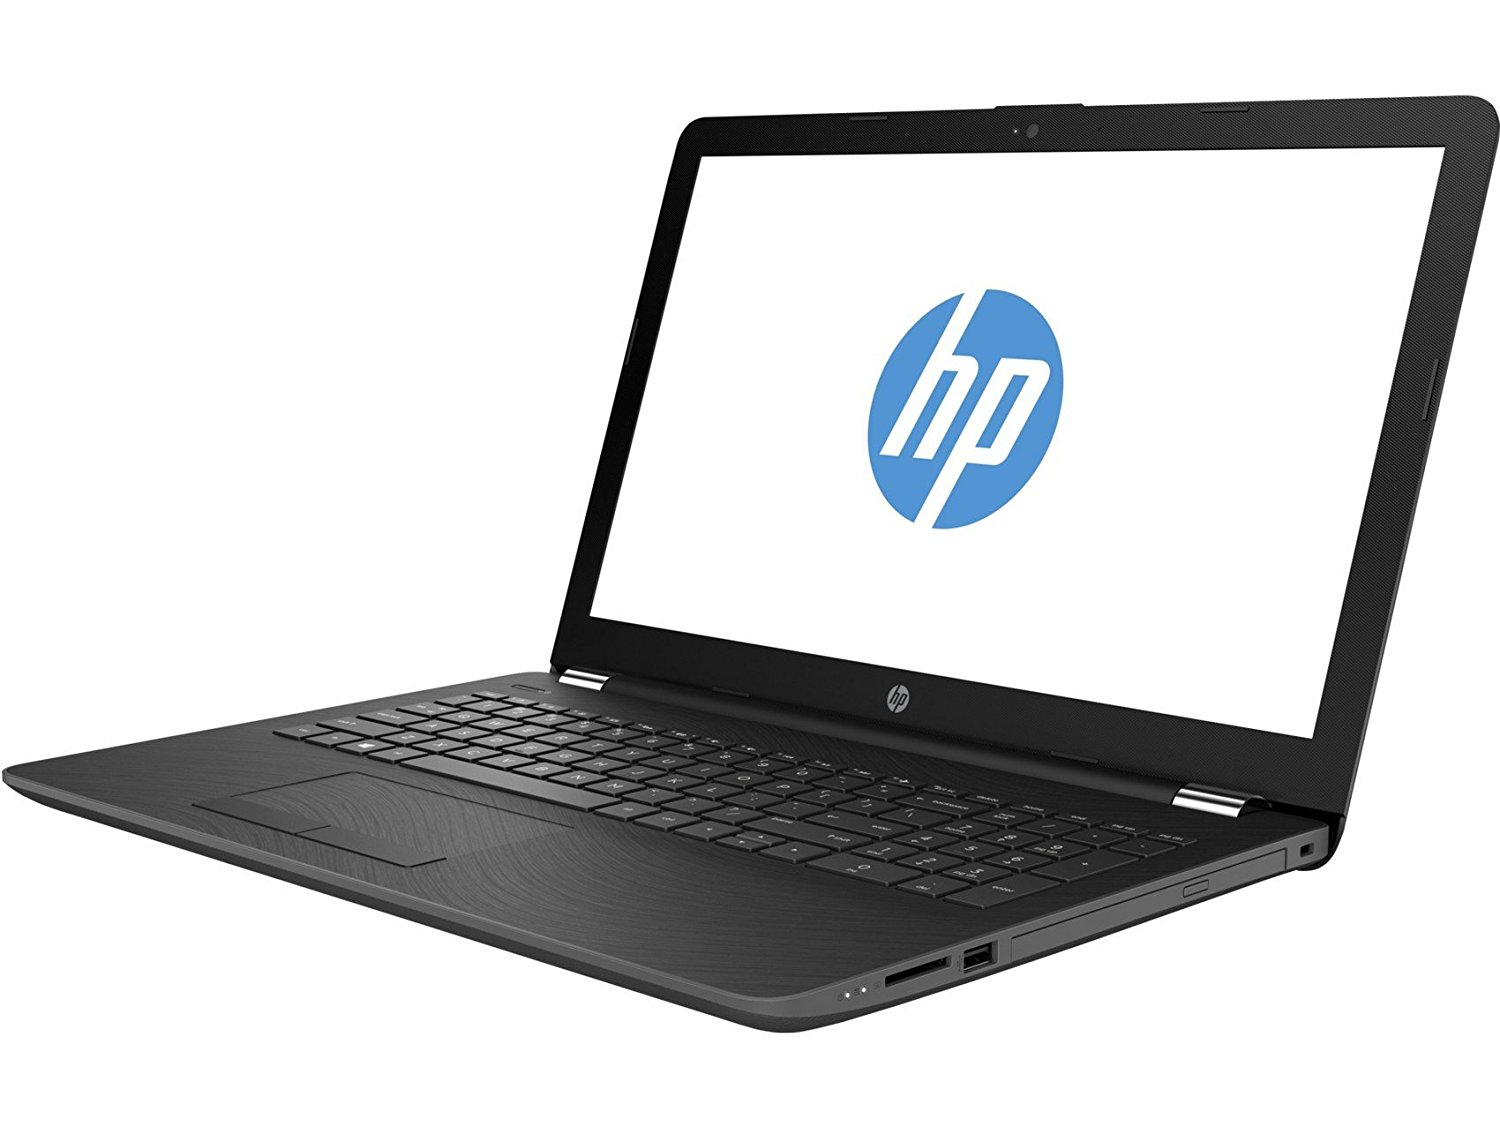 HP 15q-BU004TU 2017 15.6-inch Laptop (6th Gen Core i3-6006U:4GB:1TB:Free DOS:Integrated Graphics), Grey